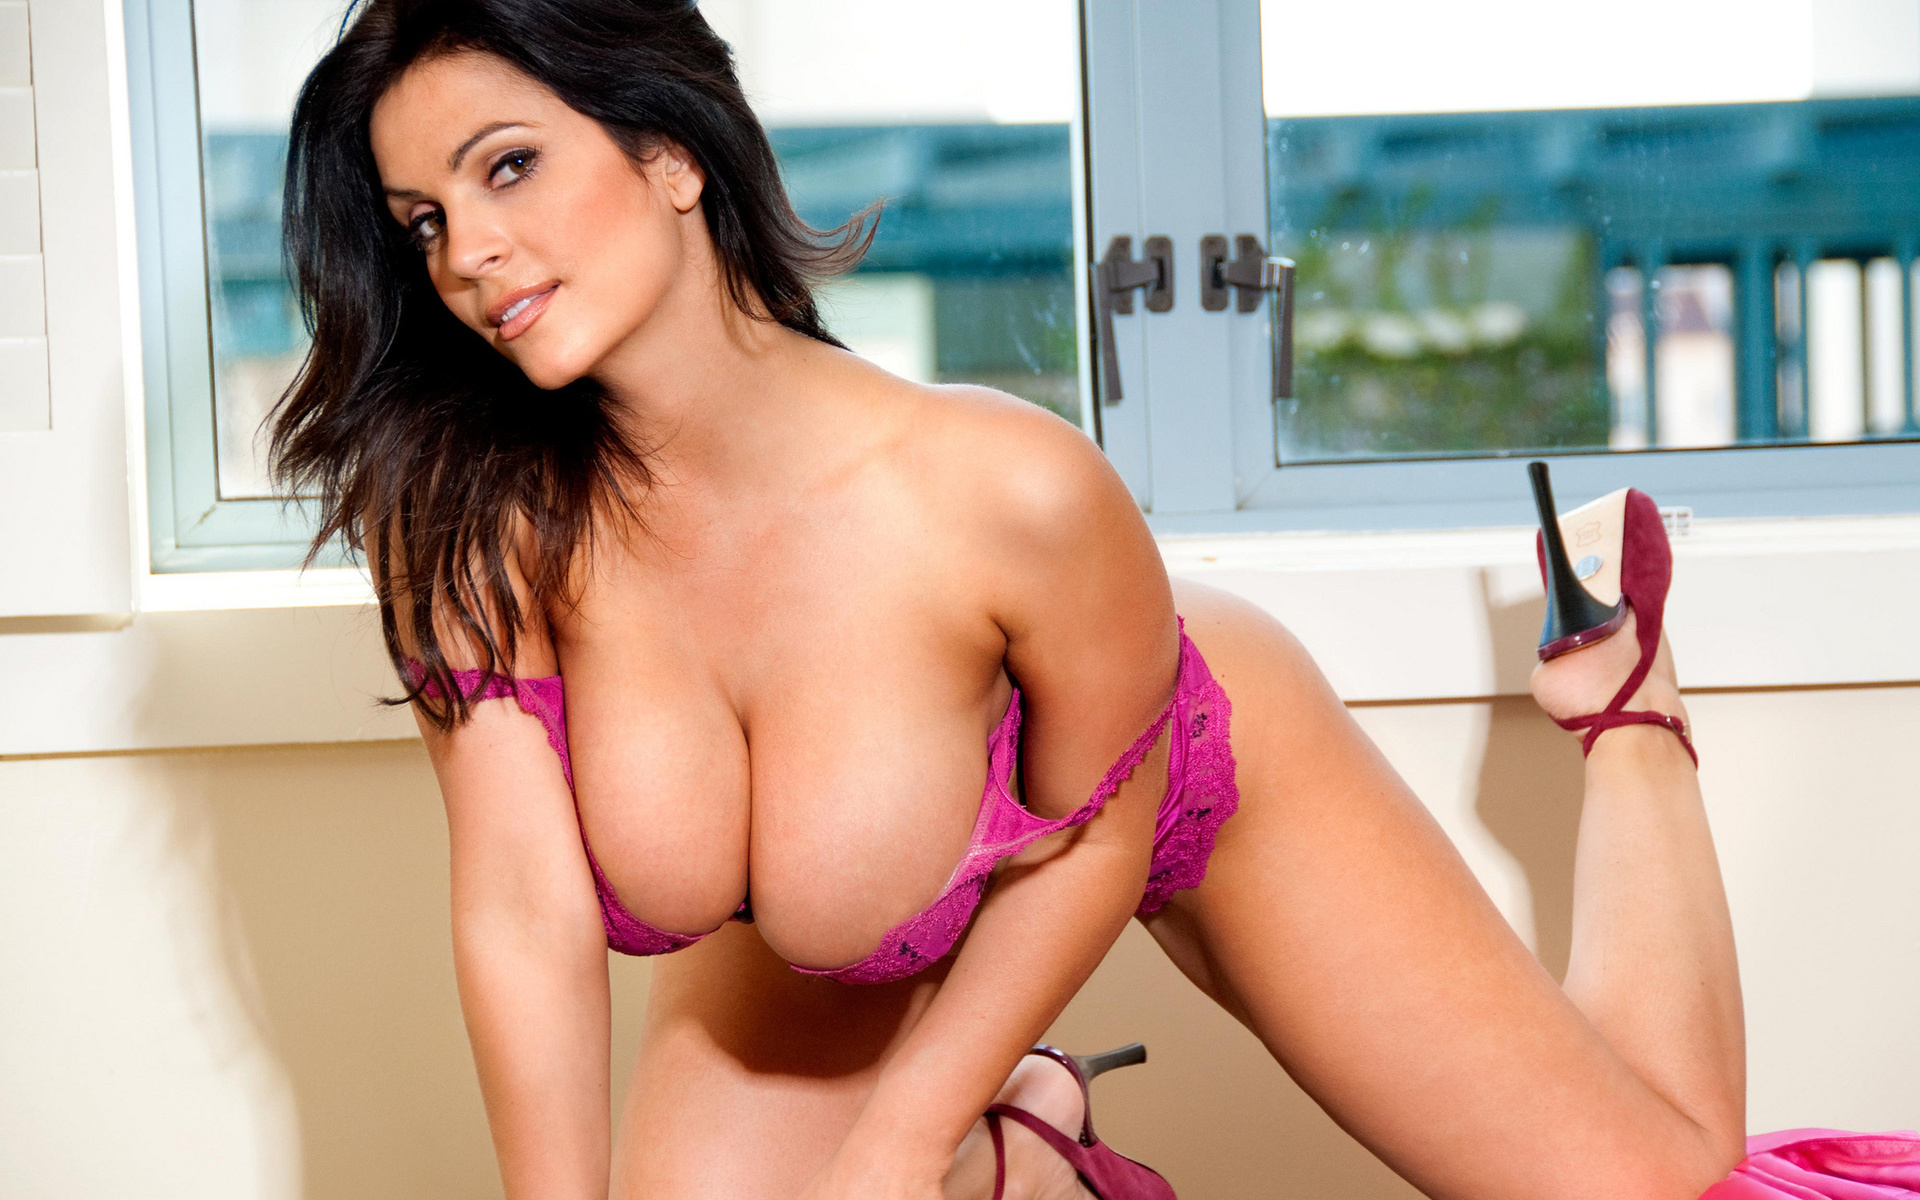 women-denise-milani-sexy-hot-naked-pictures-adult